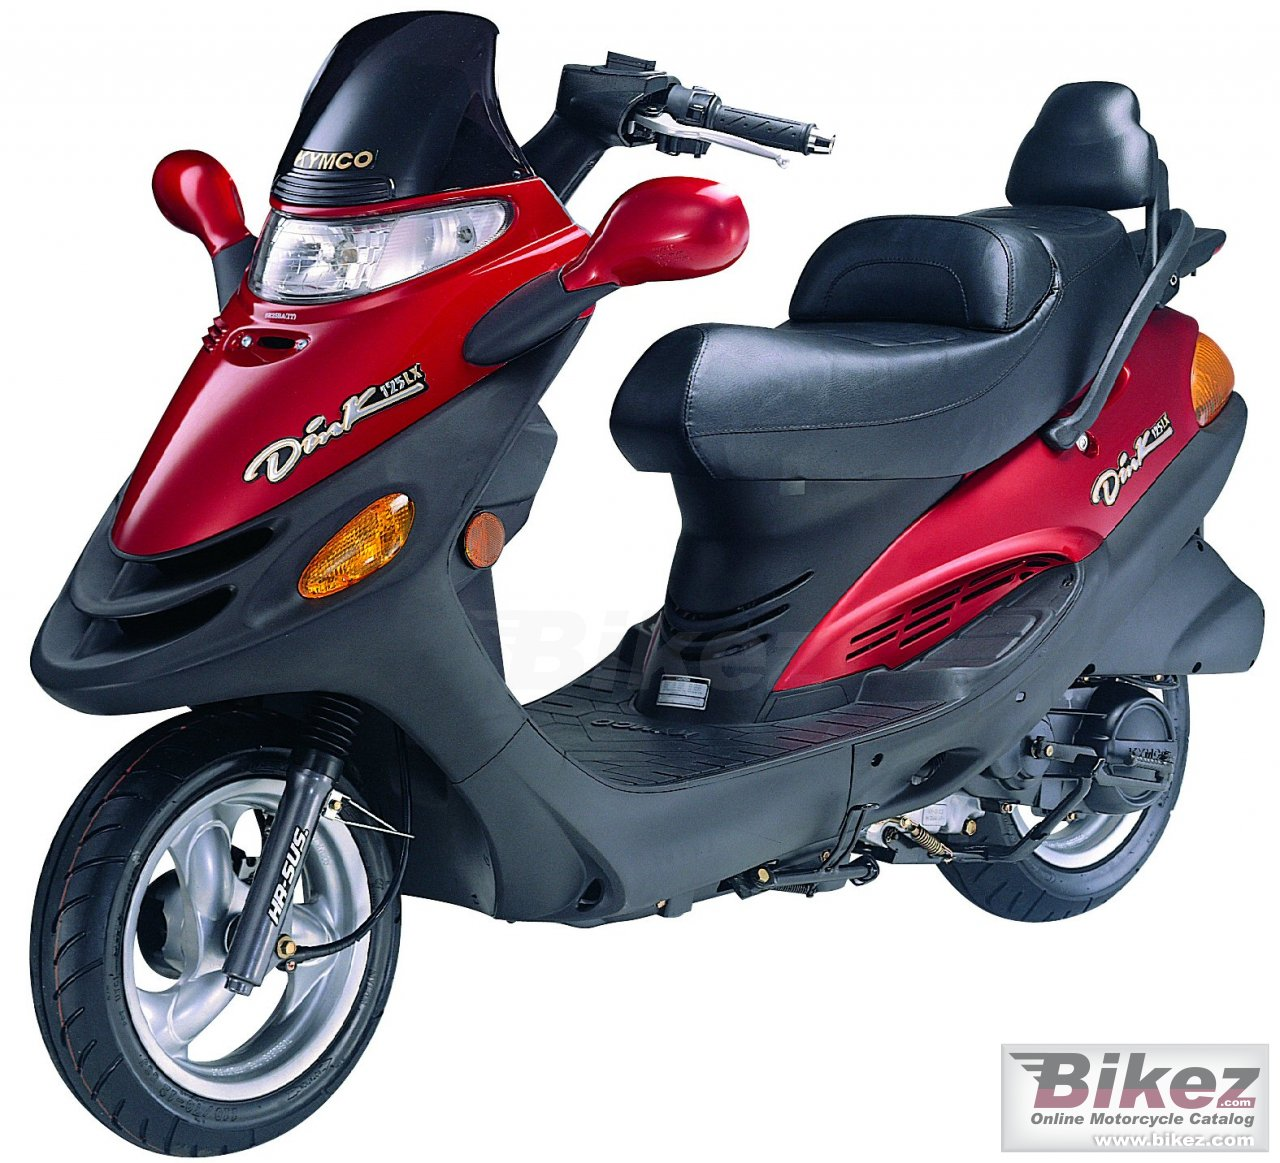 Kymco Heroism 150 1999 images #100664